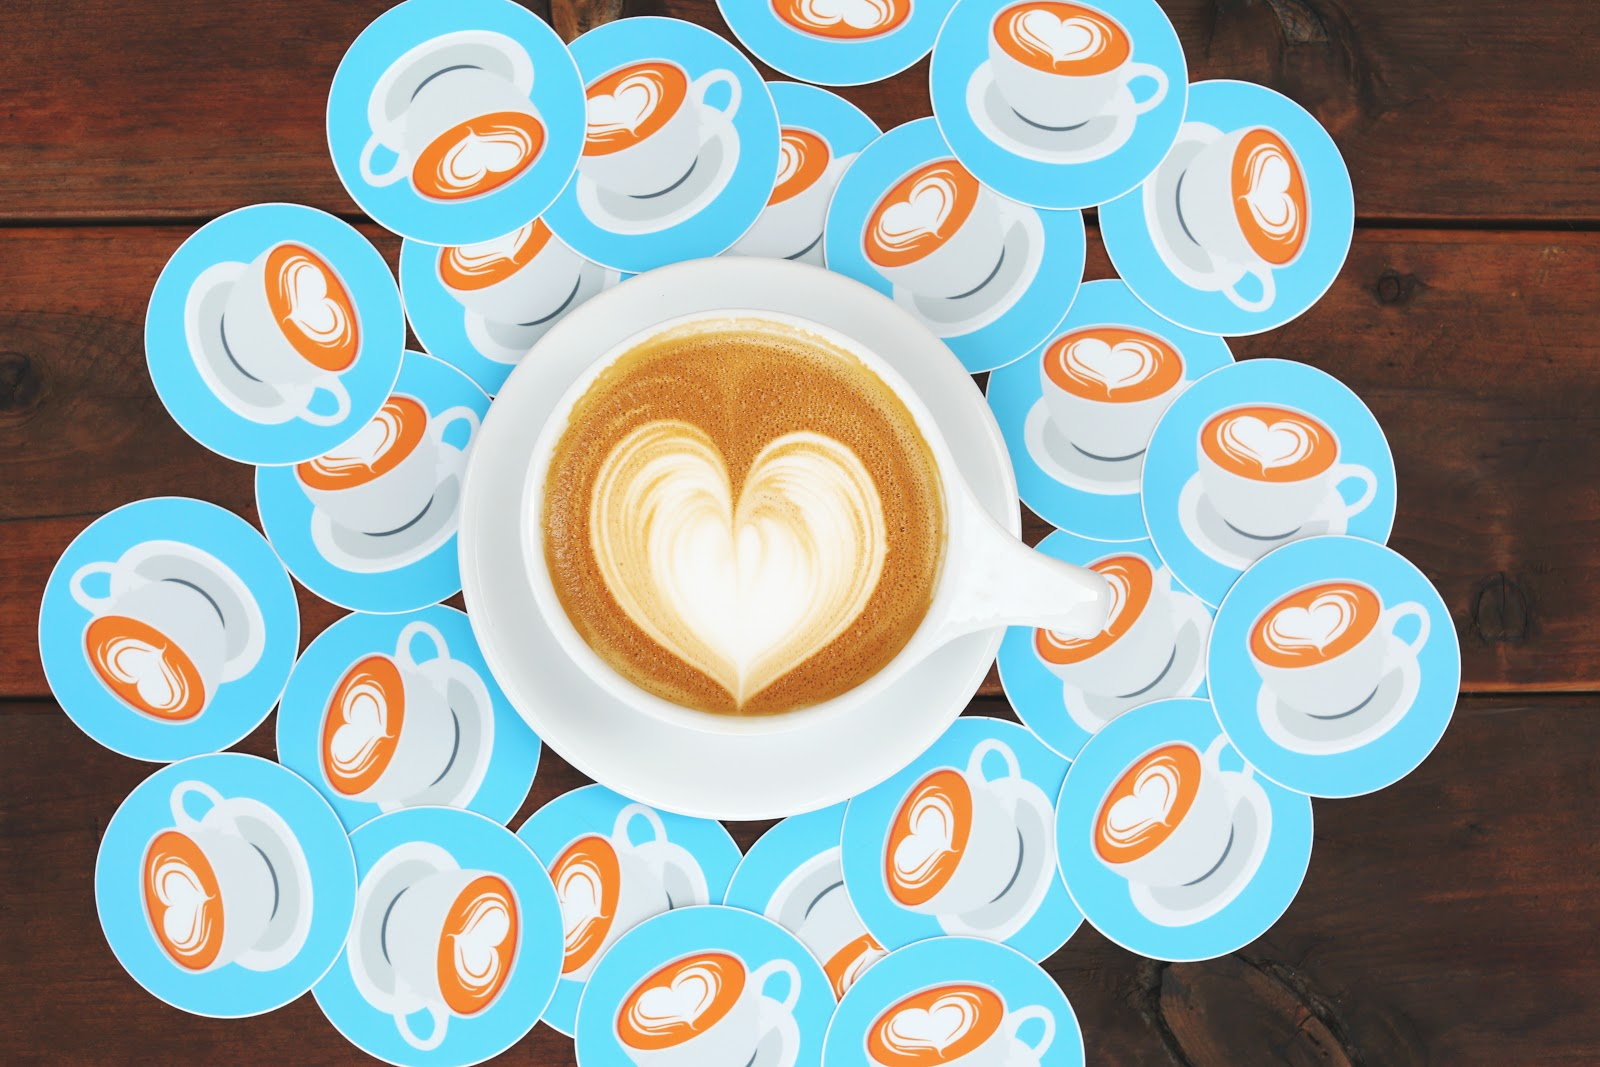 a cup of latte with coffee stickers surrounding the cup